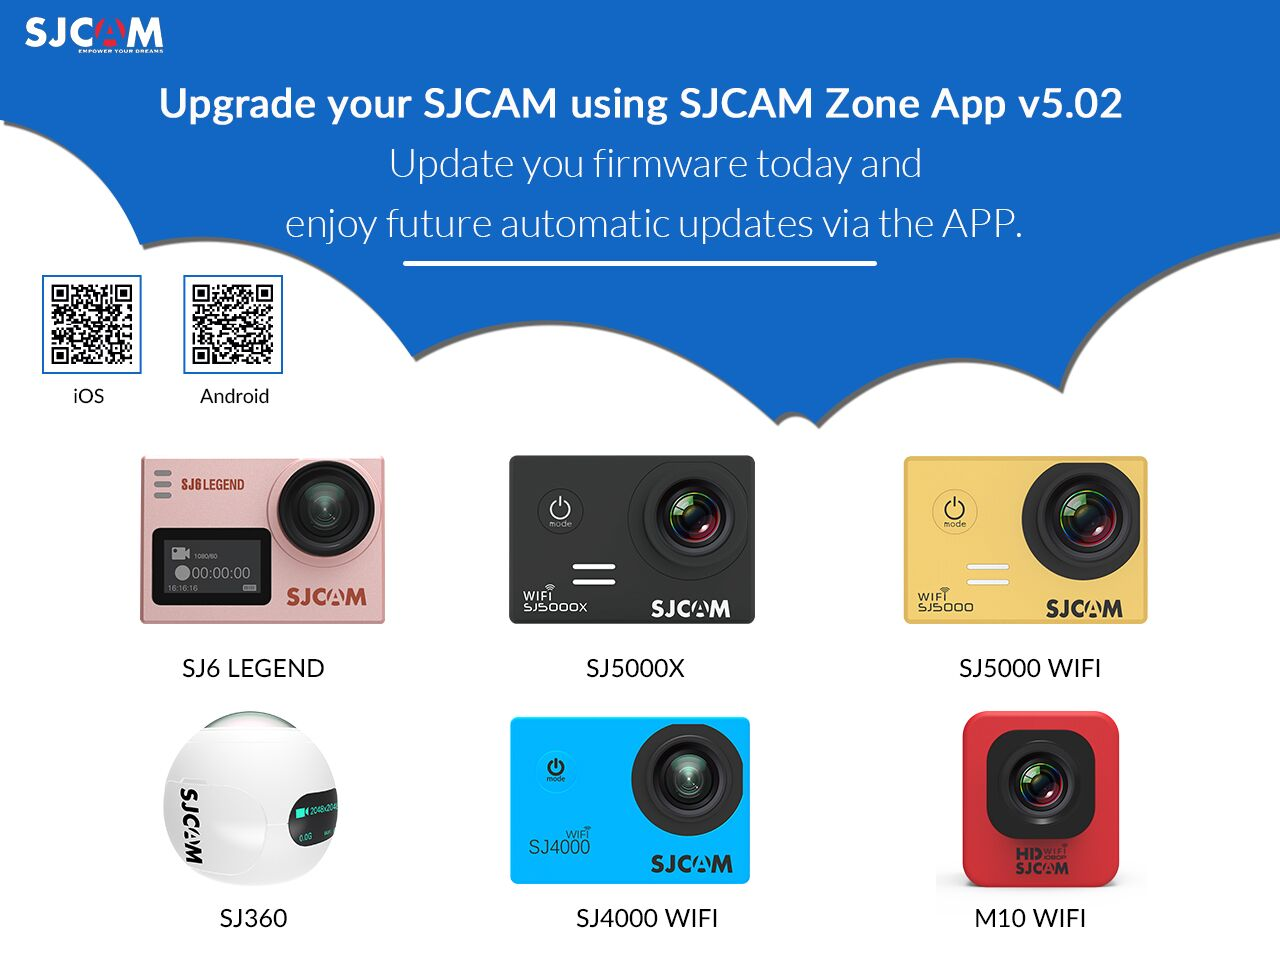 SJCAM Zone App v5.02 for iOS/Android – Upgrade Firmware for Auto-Updates